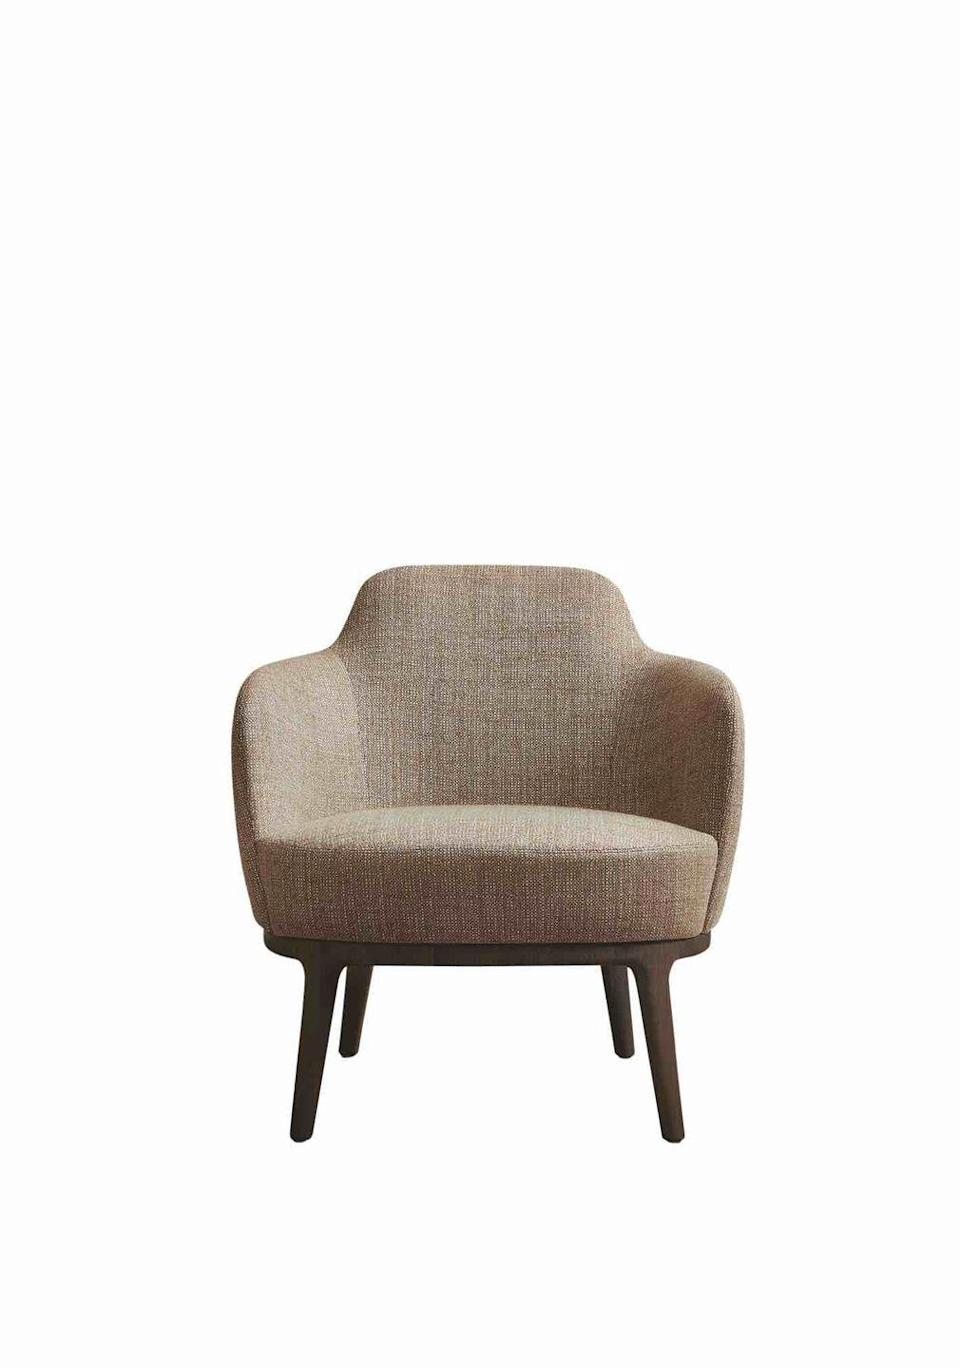 """<p>Every home office needs an upholstered occasional chair for quiet contemplation when you've got a case of writer's block or are in need of a tea break. This one by Roberto Lazzeroni is a timeless choice. £2,500, <a href=""""https://www.lemamobili.com/int/lucylle-chair-dining-armchair-stool-wooden-structure"""" rel=""""nofollow noopener"""" target=""""_blank"""" data-ylk=""""slk:lemamobili.com"""" class=""""link rapid-noclick-resp"""">lemamobili.com</a></p>"""